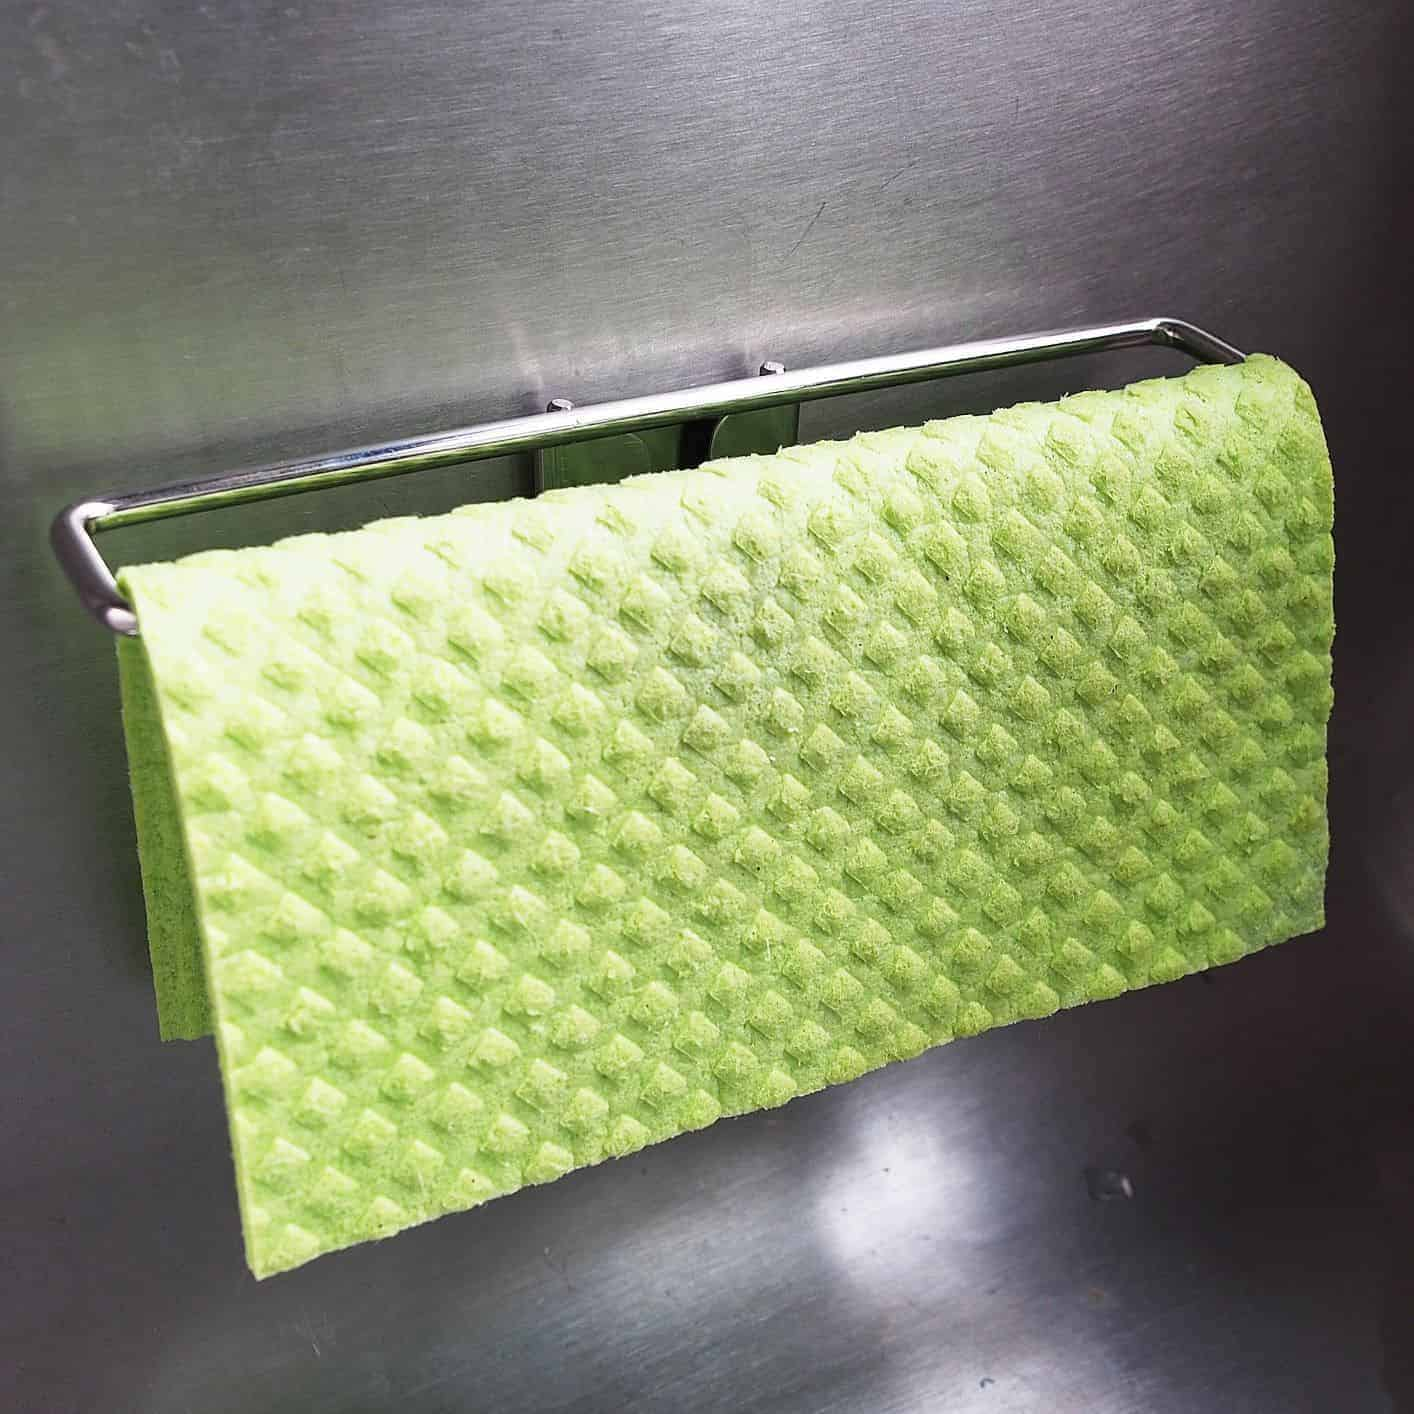 BEST Dish Cloth Holder Caddy for Kitchen Sink | Uses Detachable Adhesive